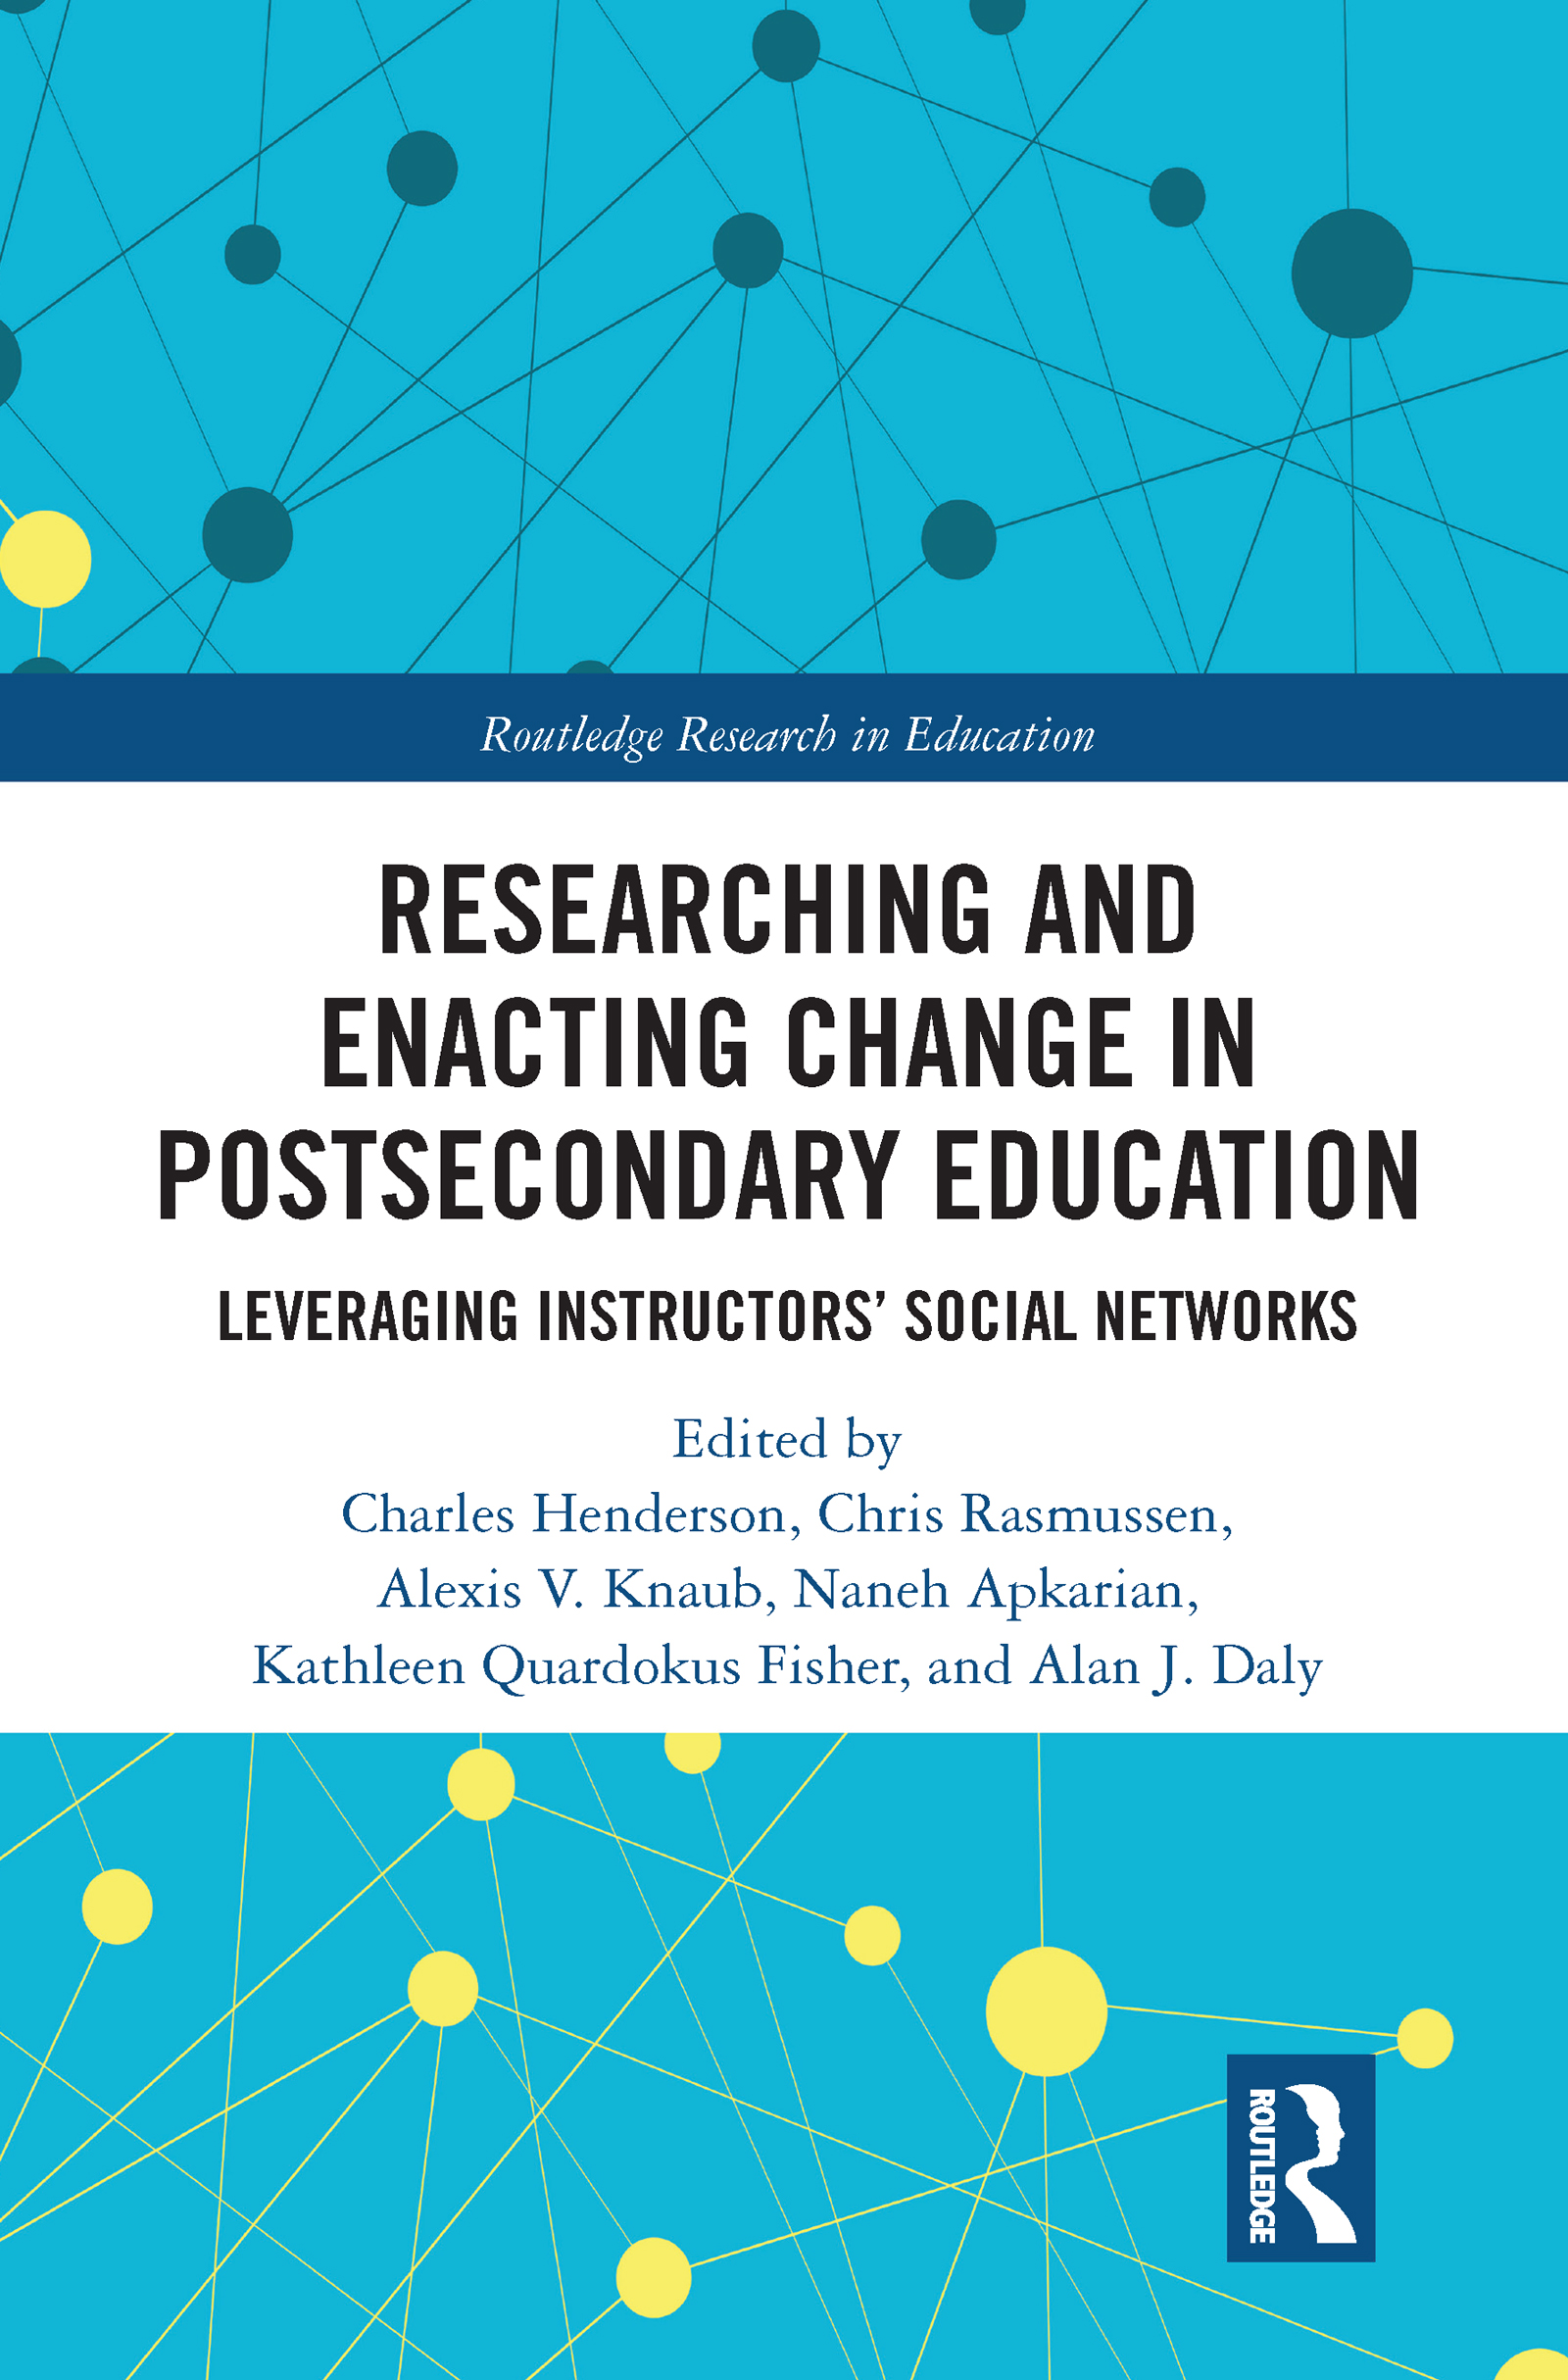 Researching and Enacting Change in Postsecondary Education